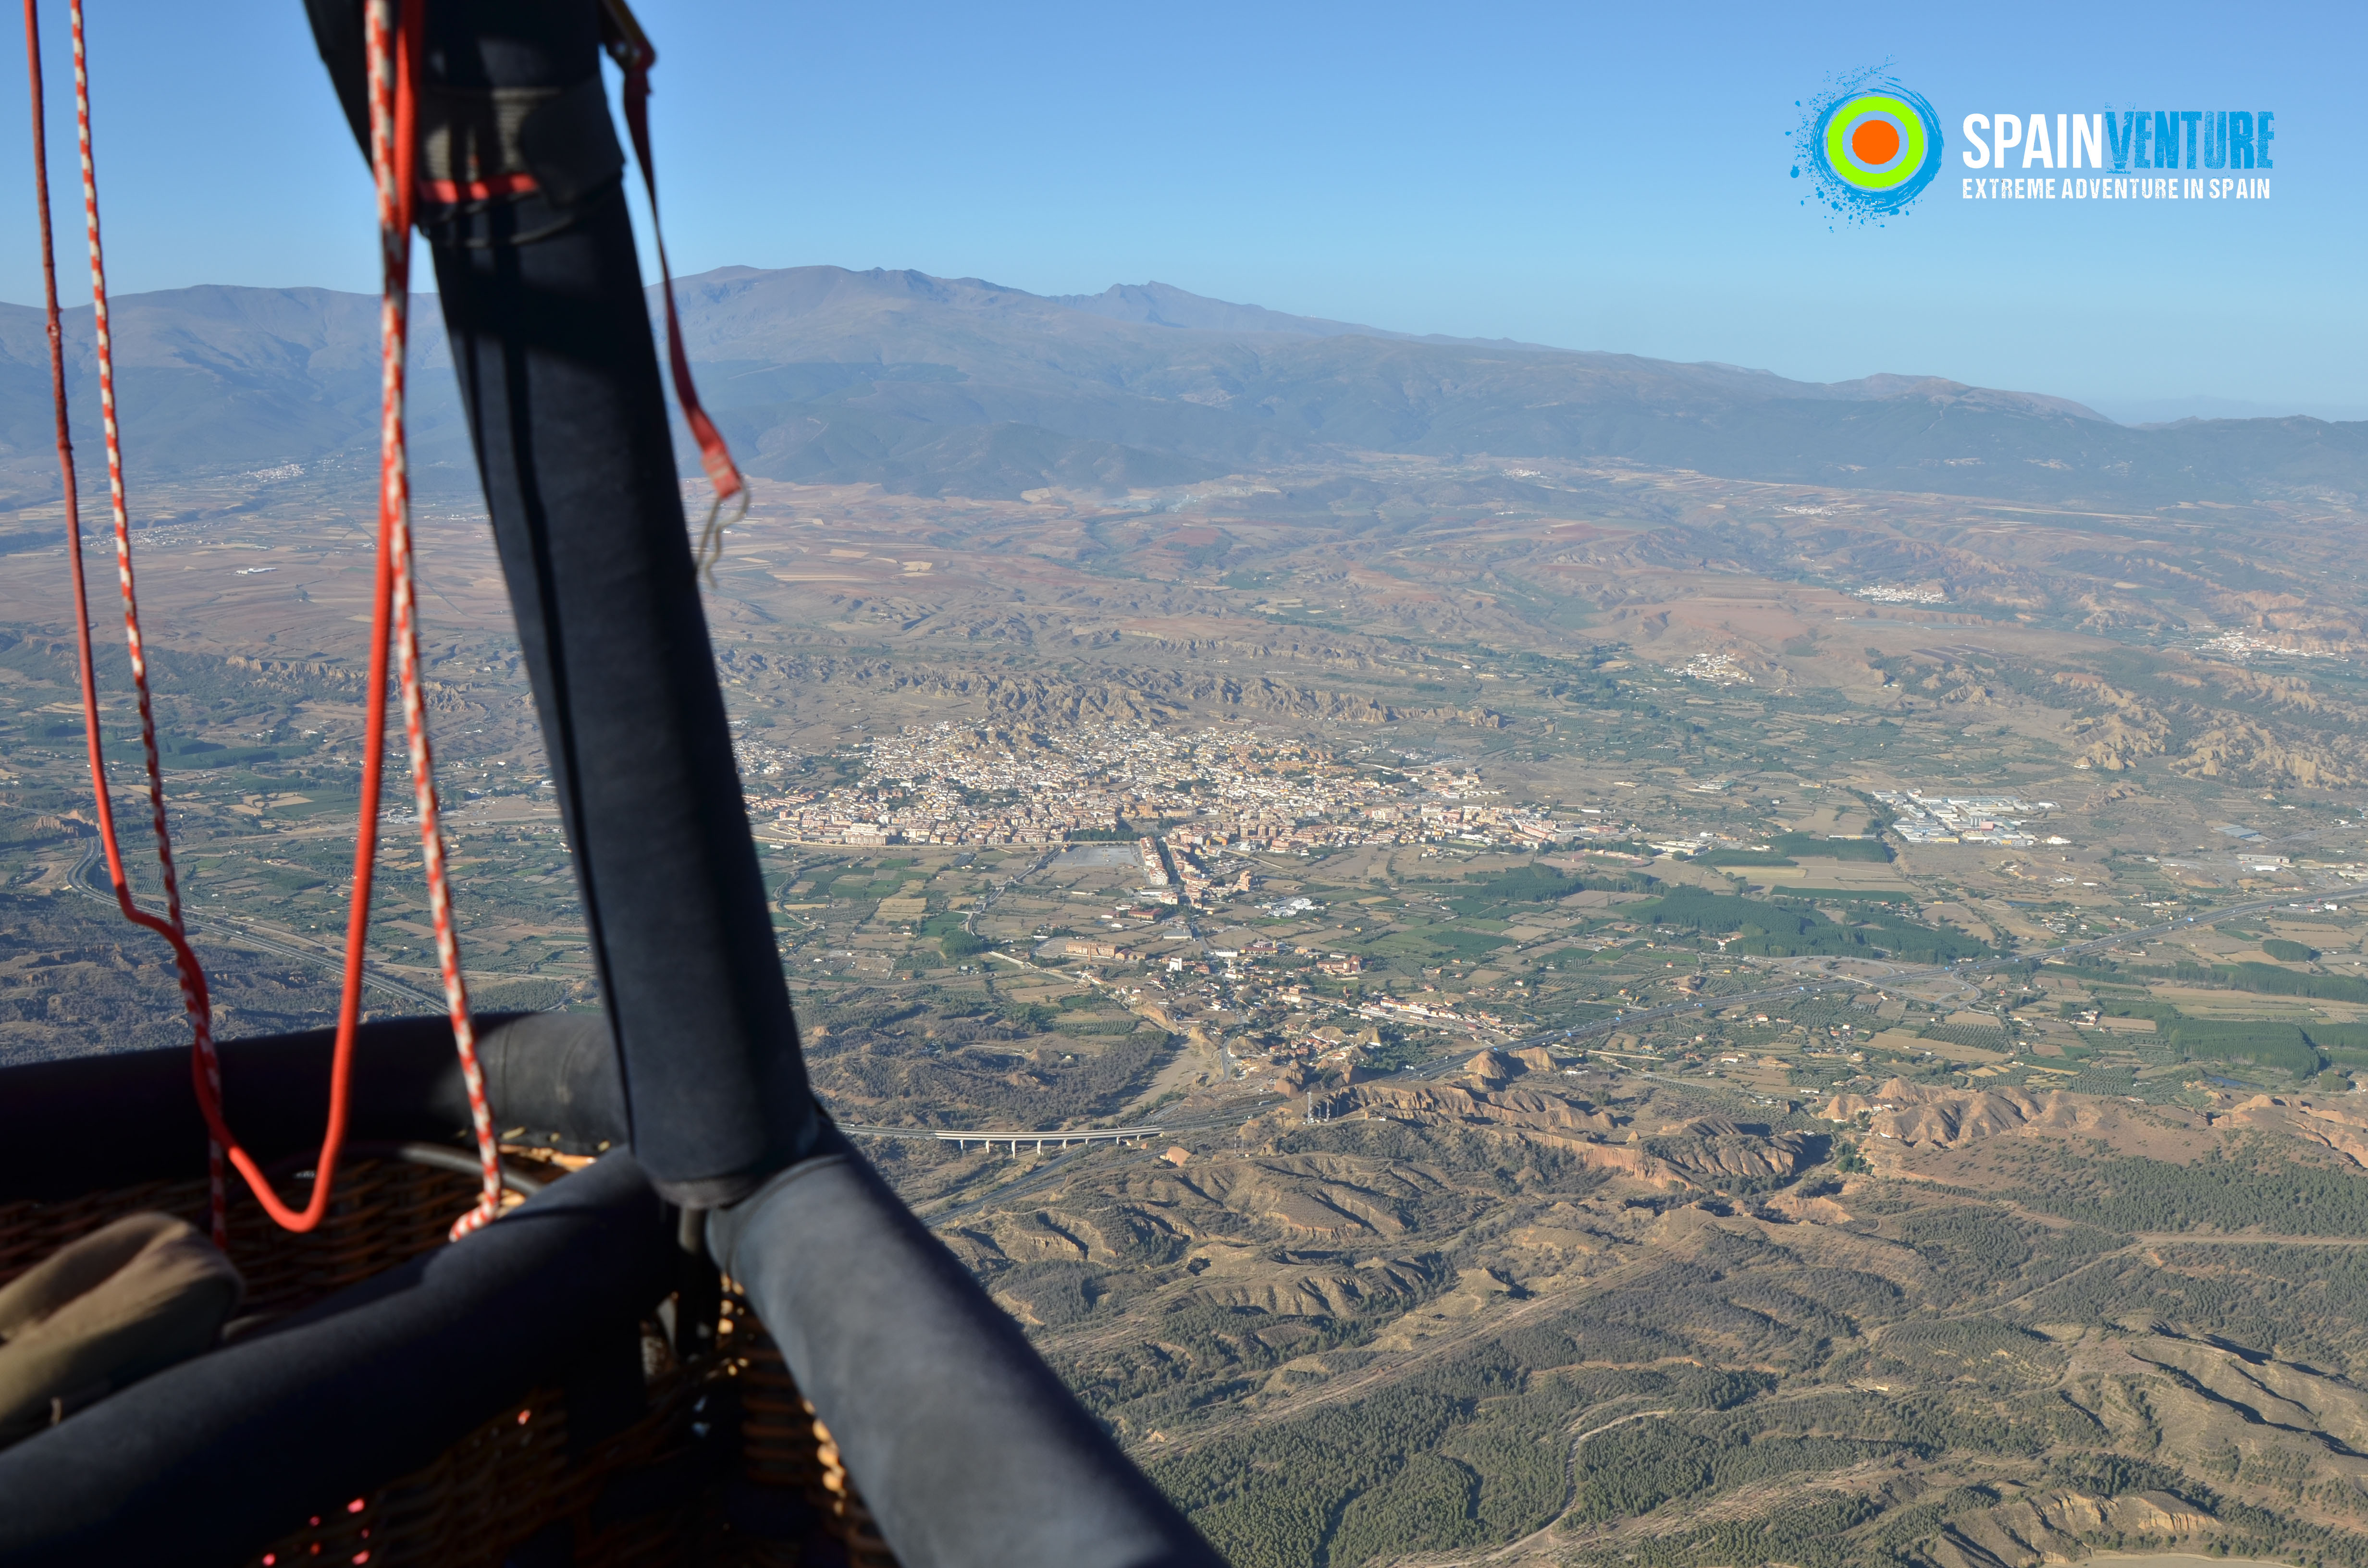 spainventure-hot-air-balloon-flight-in-spain-vuelo-en-globo-miedo-a-las-alturas Vuelo en Globo aerostatico en andalucia